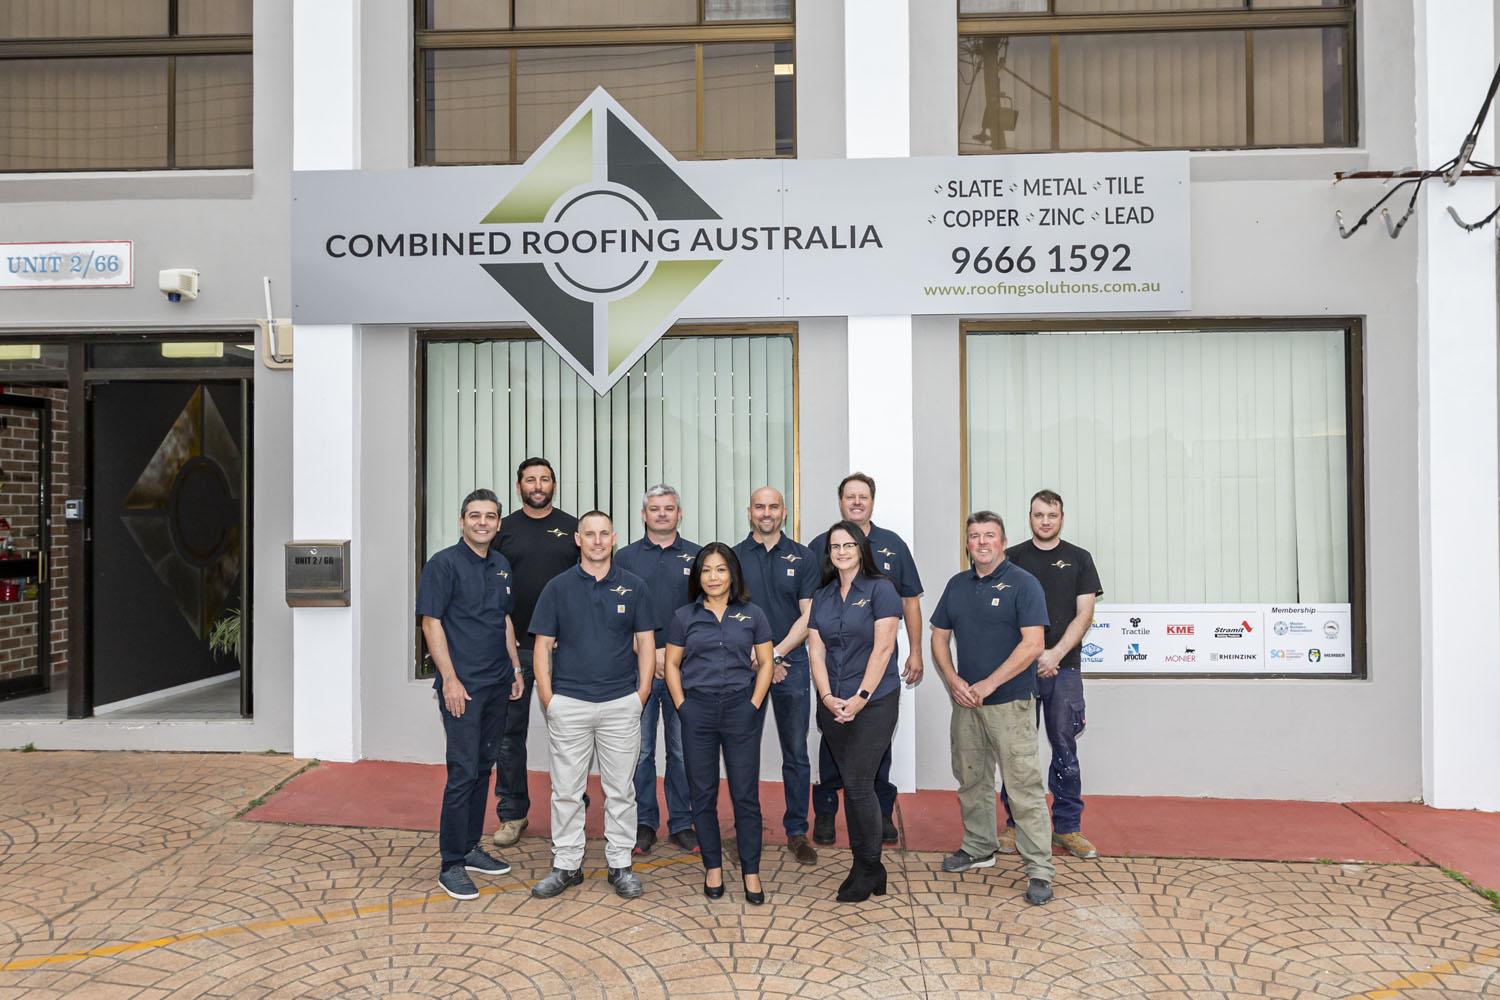 Combined Roofing Sydney Location and Team